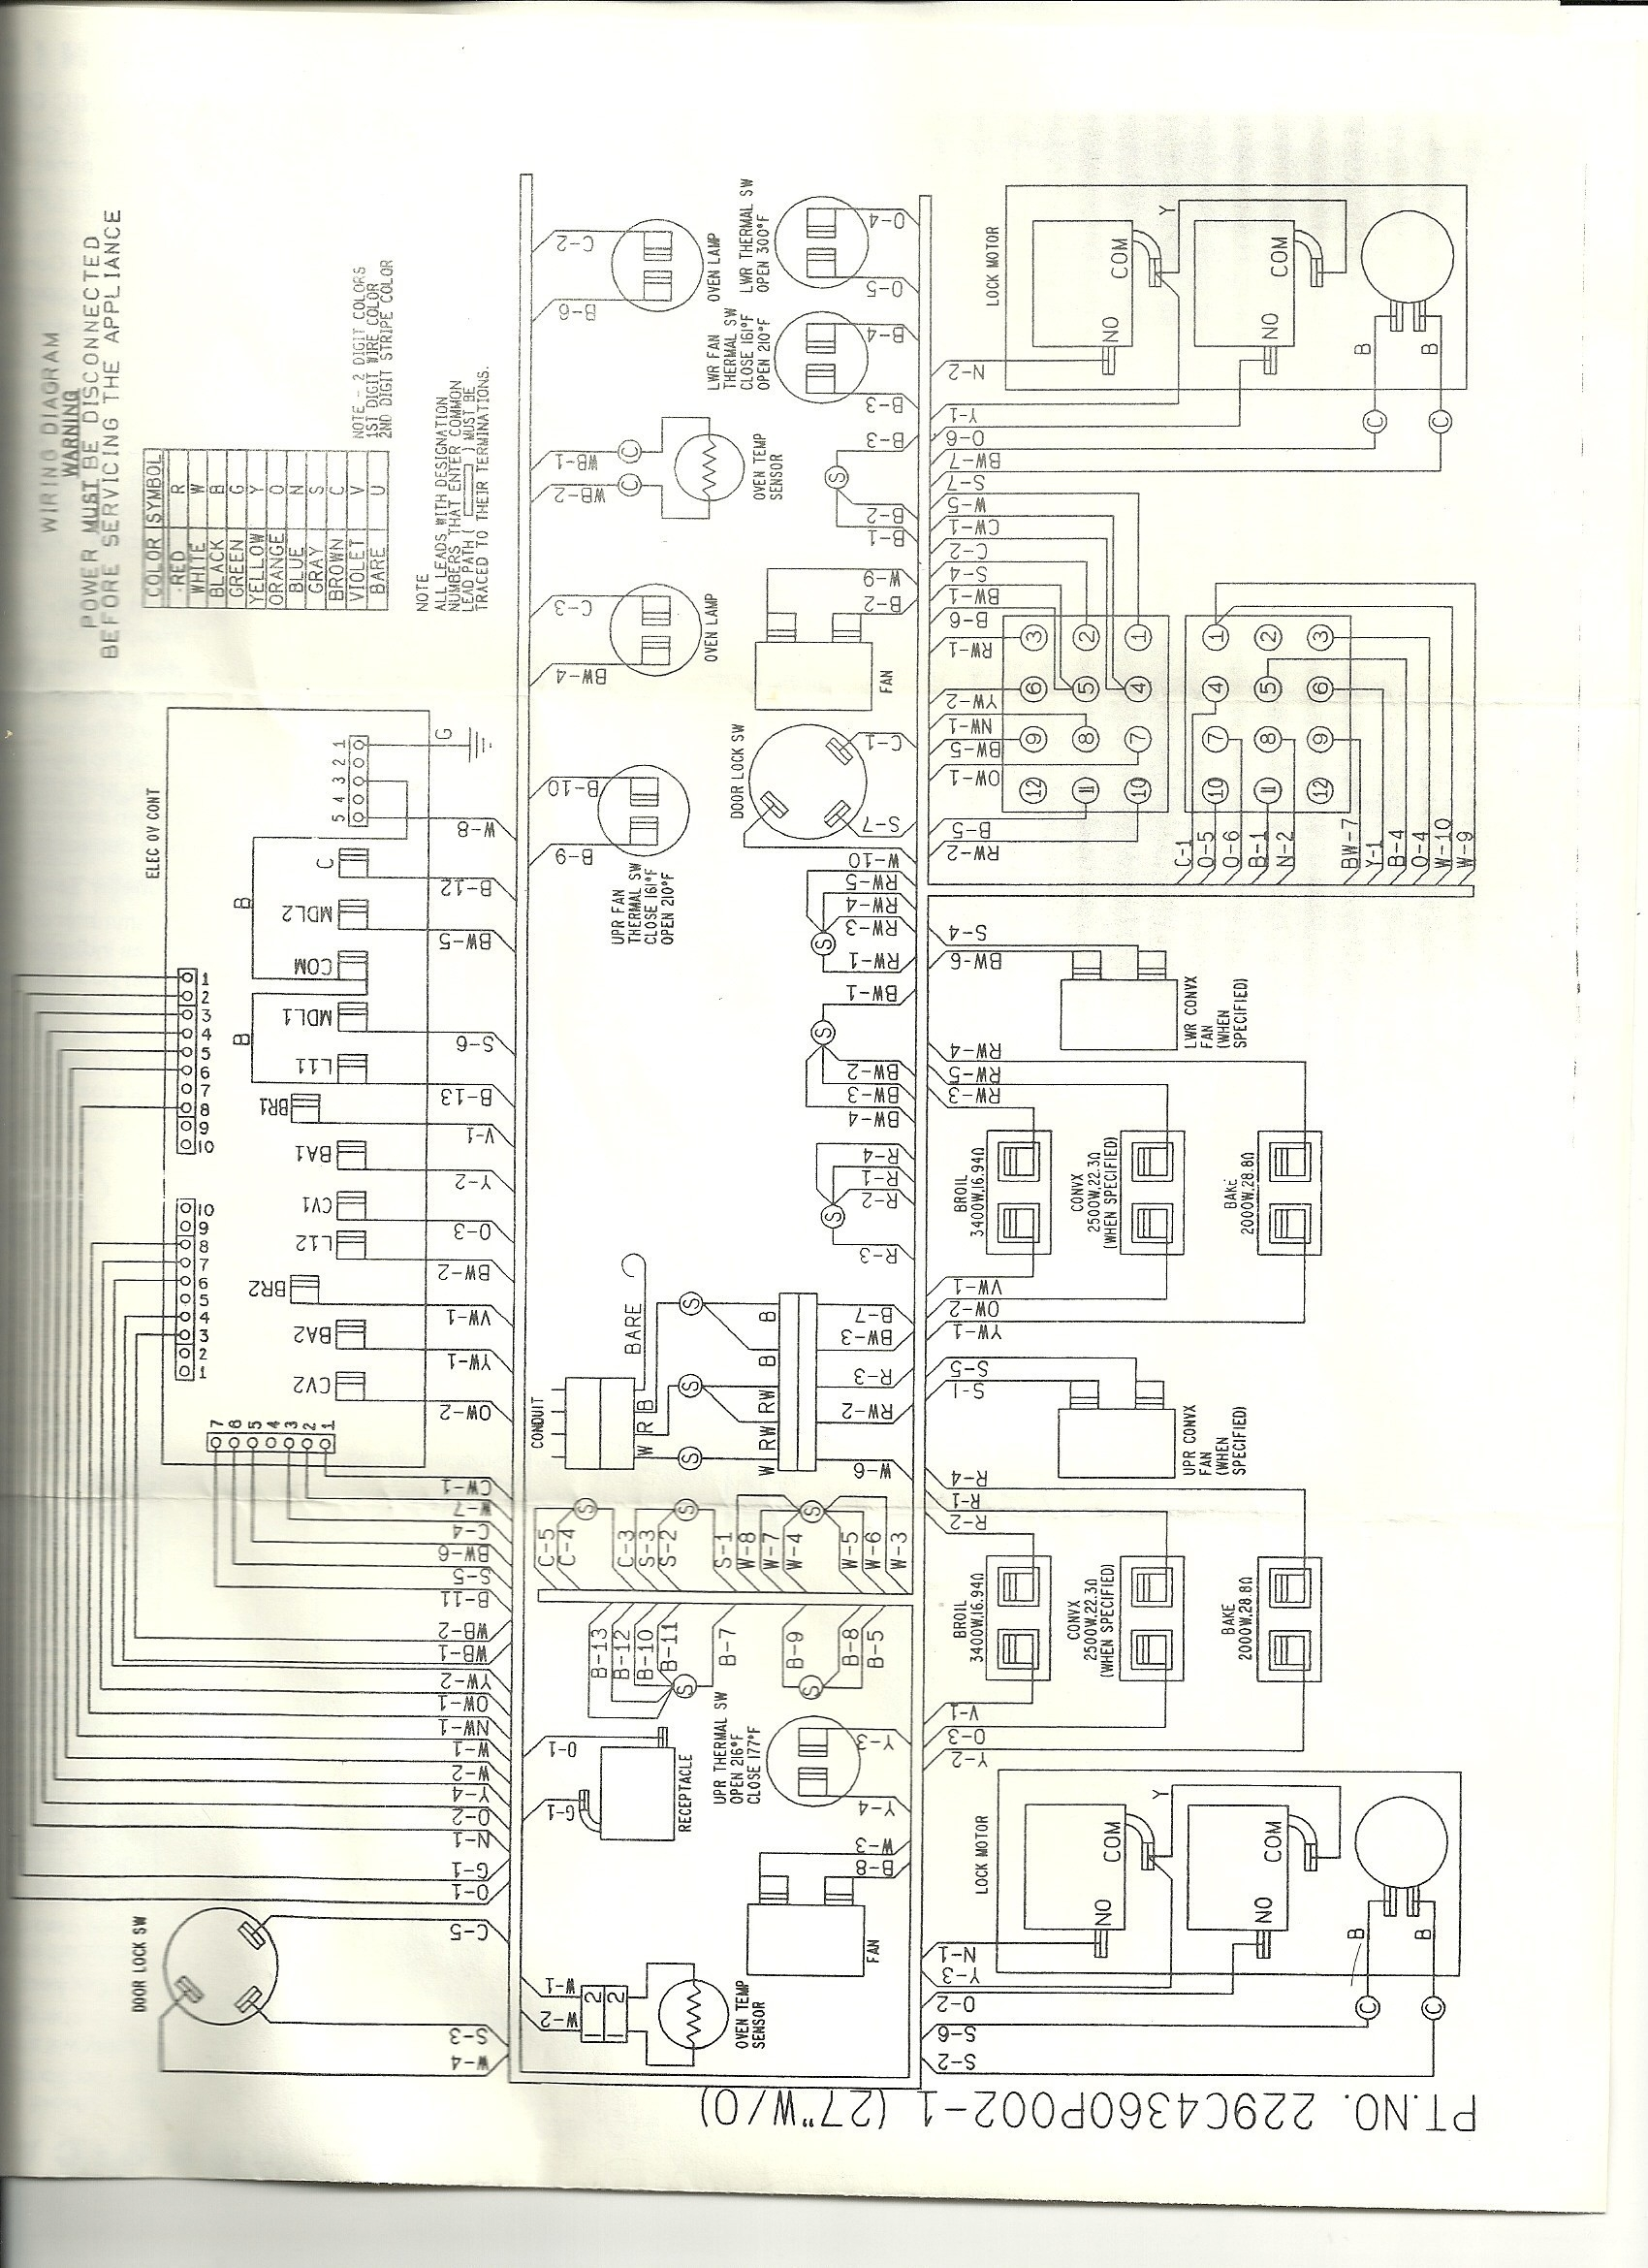 Kenmore Gas Dryer Wiring Schematic on kenmore 110 dryer schematic, kenmore he3 gas dryer circuit board, kenmore gas dryer ignitor, kenmore model 110 schematic, kenmore series 80 washer wiring diagram, kenmore dryer wiring diagram for heater, kenmore 80 series dryer schematic, kenmore gas dryer dimensions, whirlpool dryer electrical schematic, kenmore model 110 90 series,